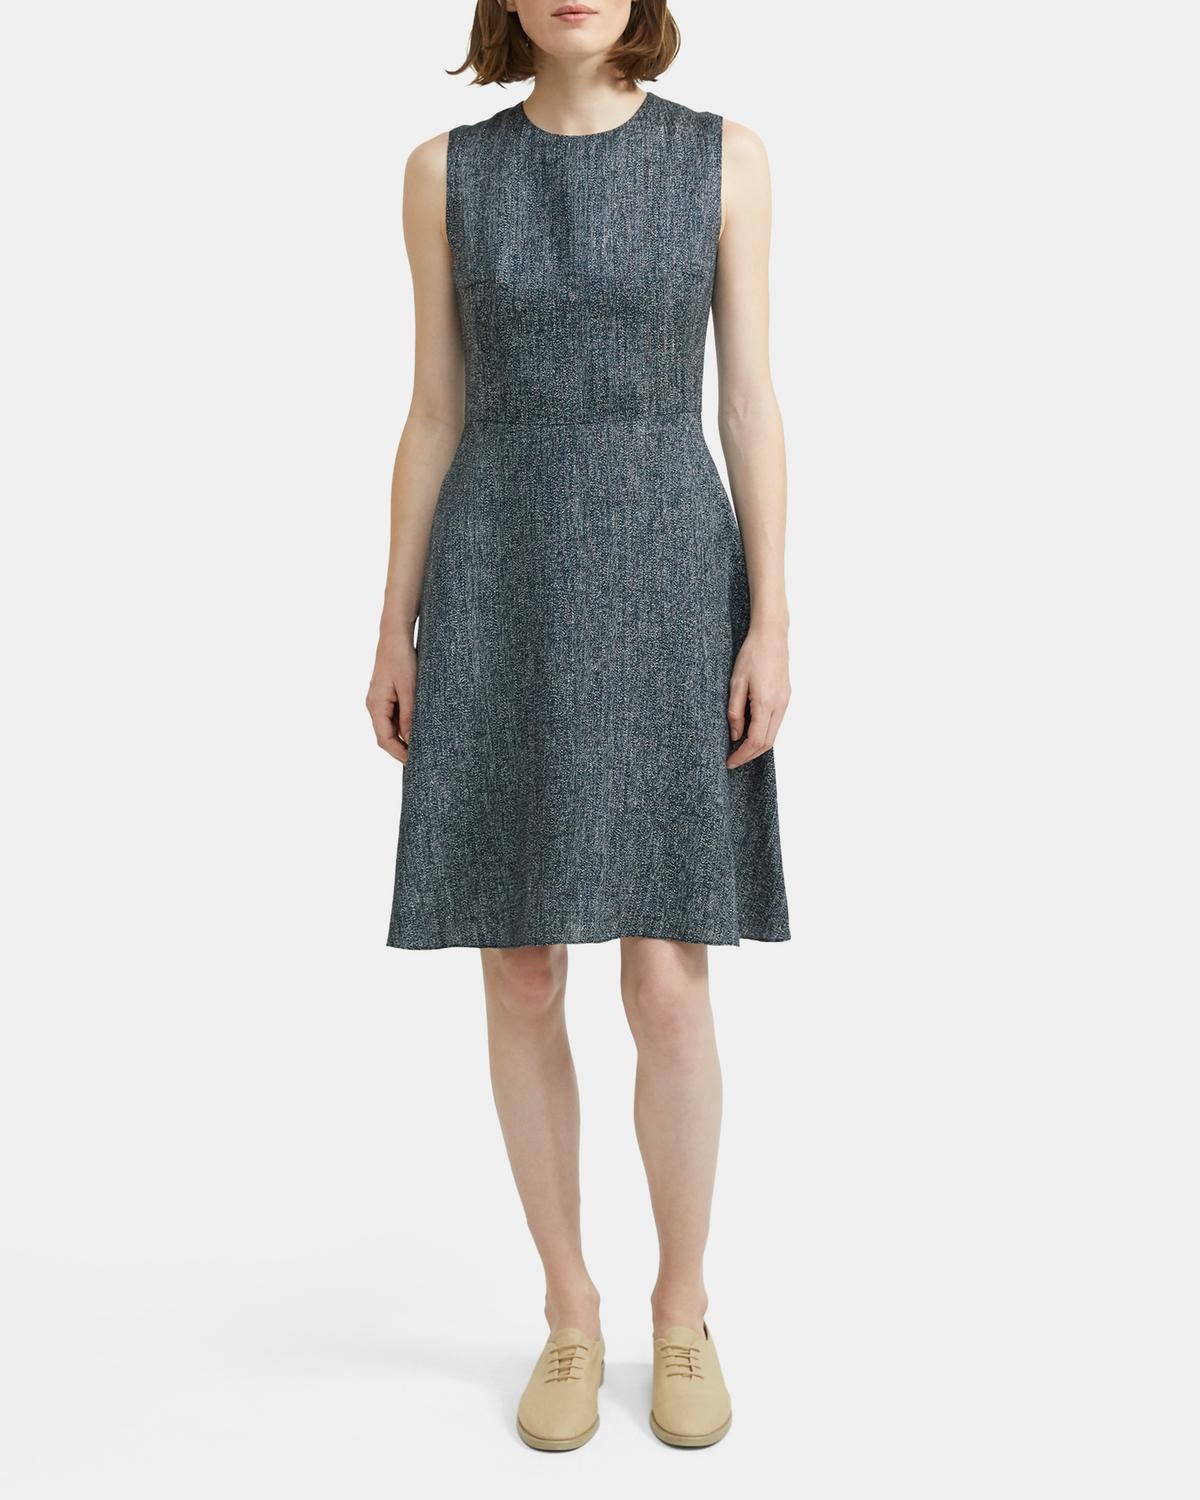 Dart Mini Dress in Herringbone Linen Blend